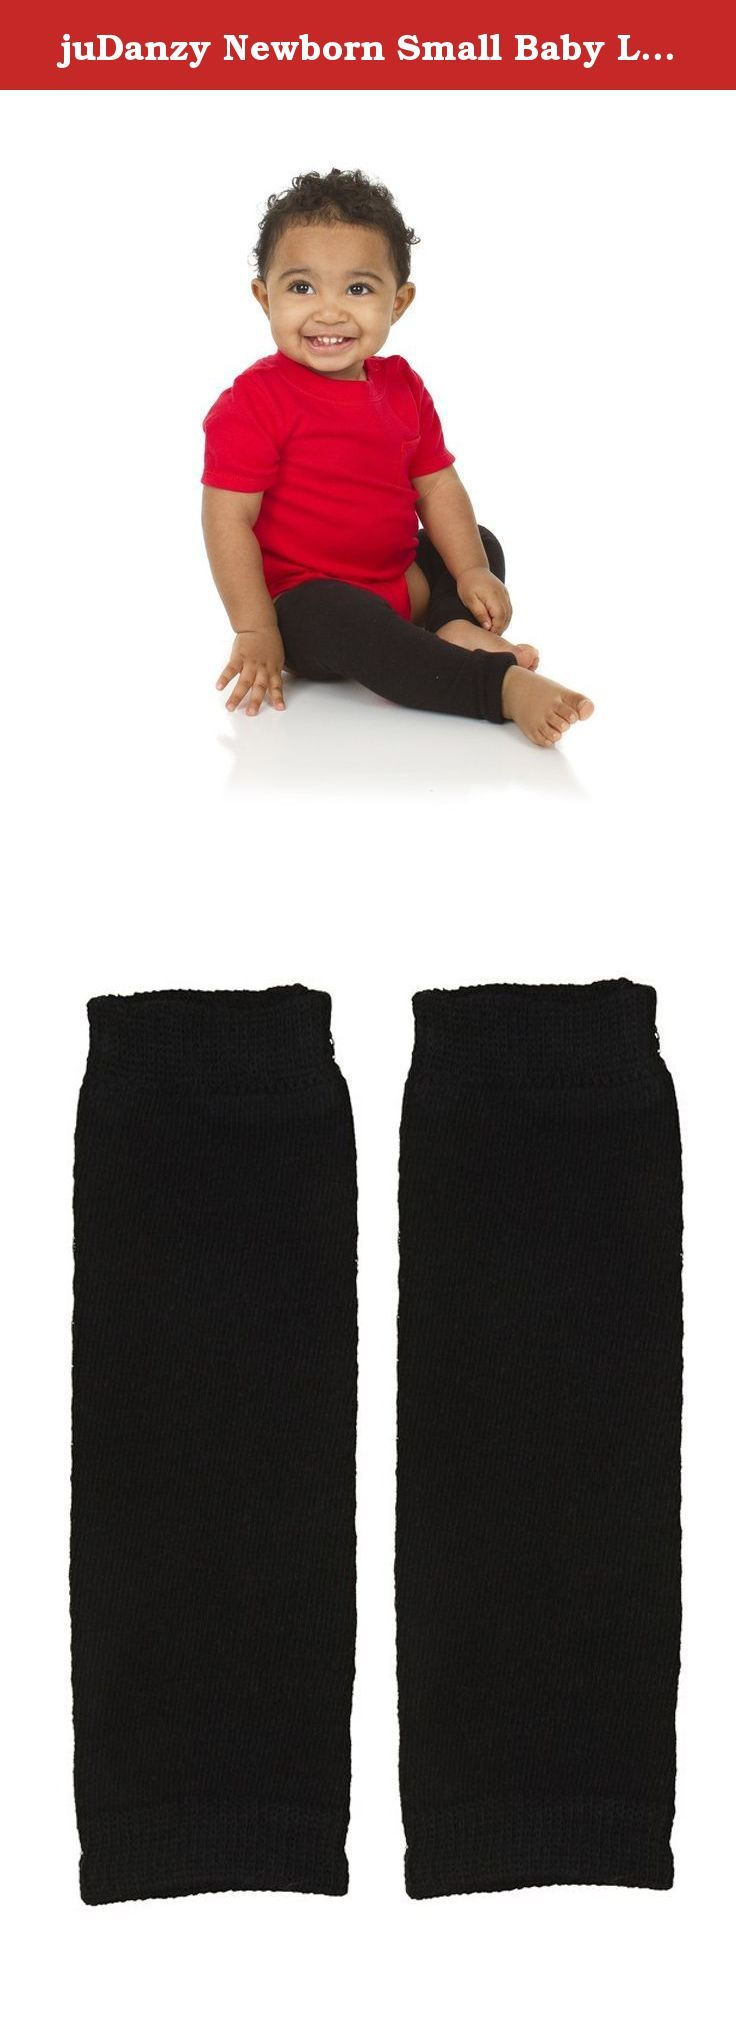 juDanzy Newborn Small Baby Leg Warmers (Newborn-15 Pounds) (Solid Black). These newborn solid black leg warmers are a fashion necessity for every tiny style seeker. Composition: 80% Cotton, 18% Nylon, 2% Spandex Length: 8 inches (21cm) Recommended for babies newborn to 15 pounds.